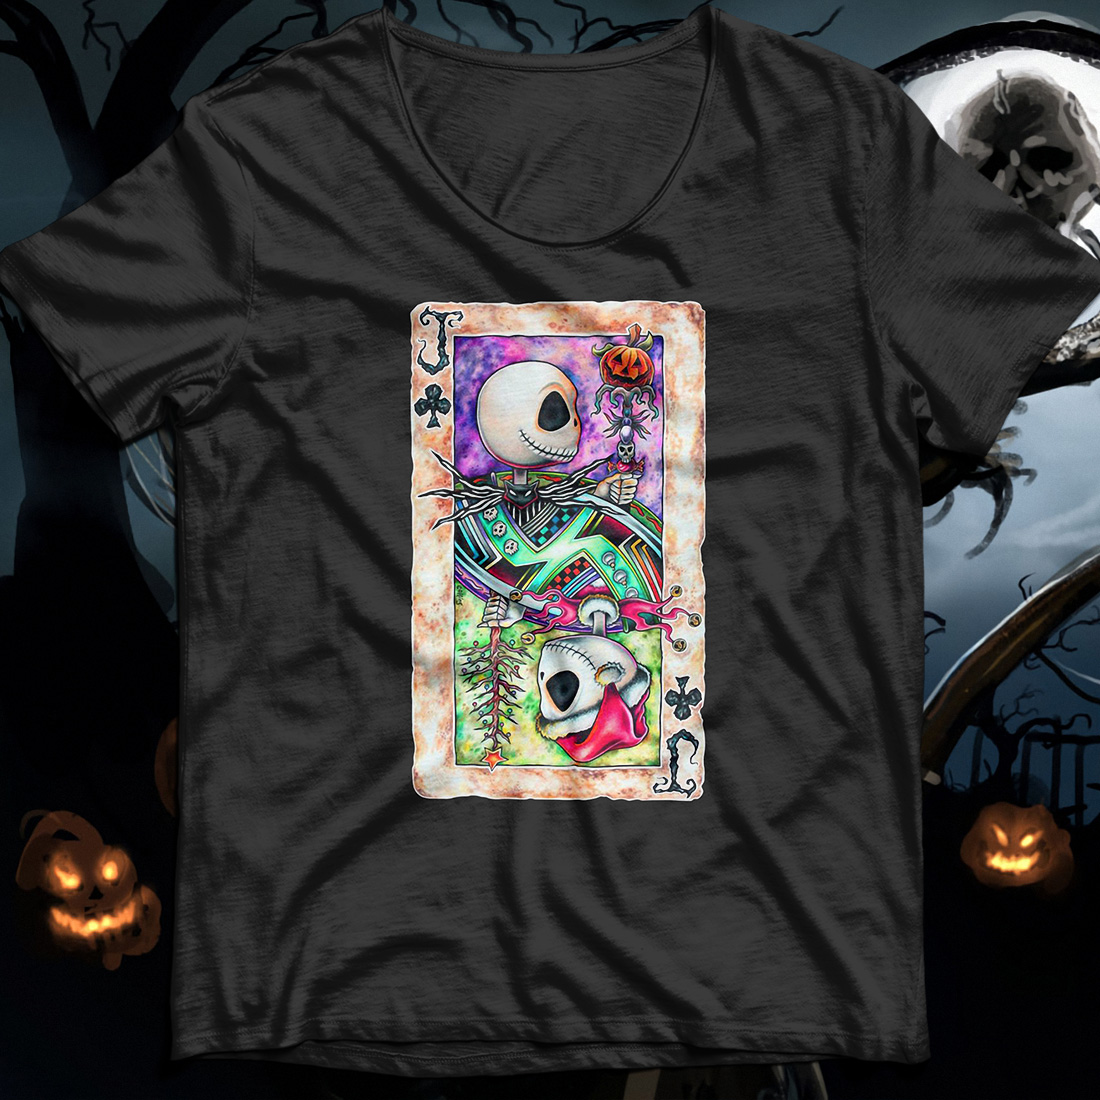 Jack Skellington playing card shirt